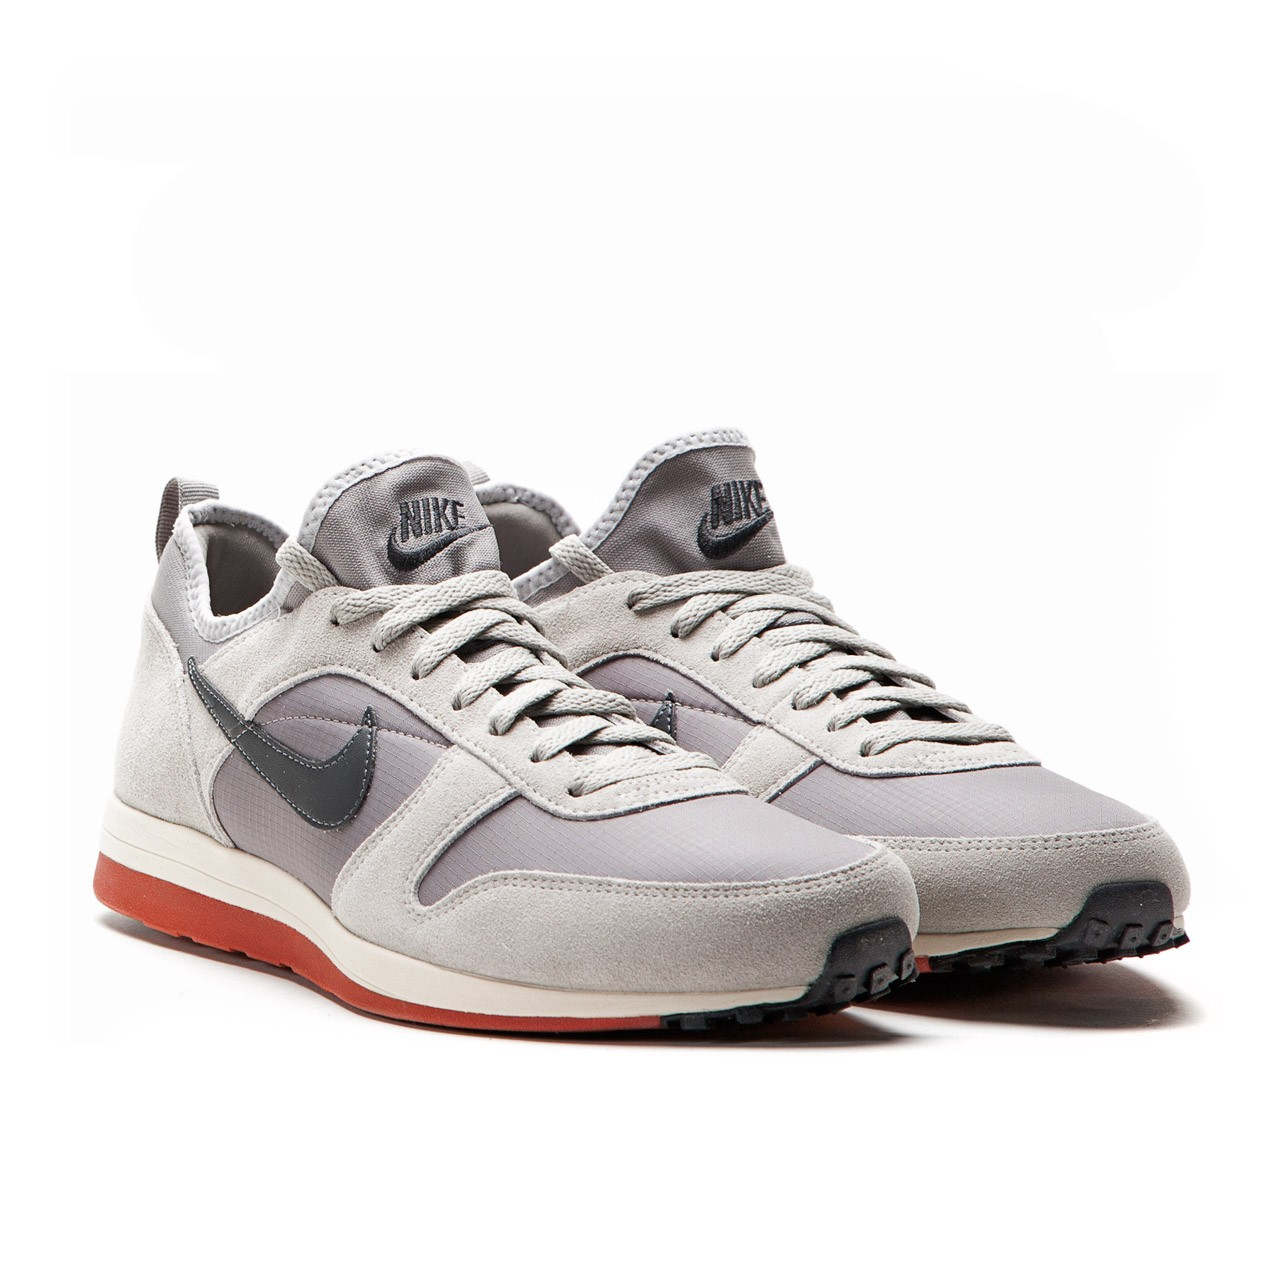 nike-archive-_75.m-light-charcoal-anthracite-2_1